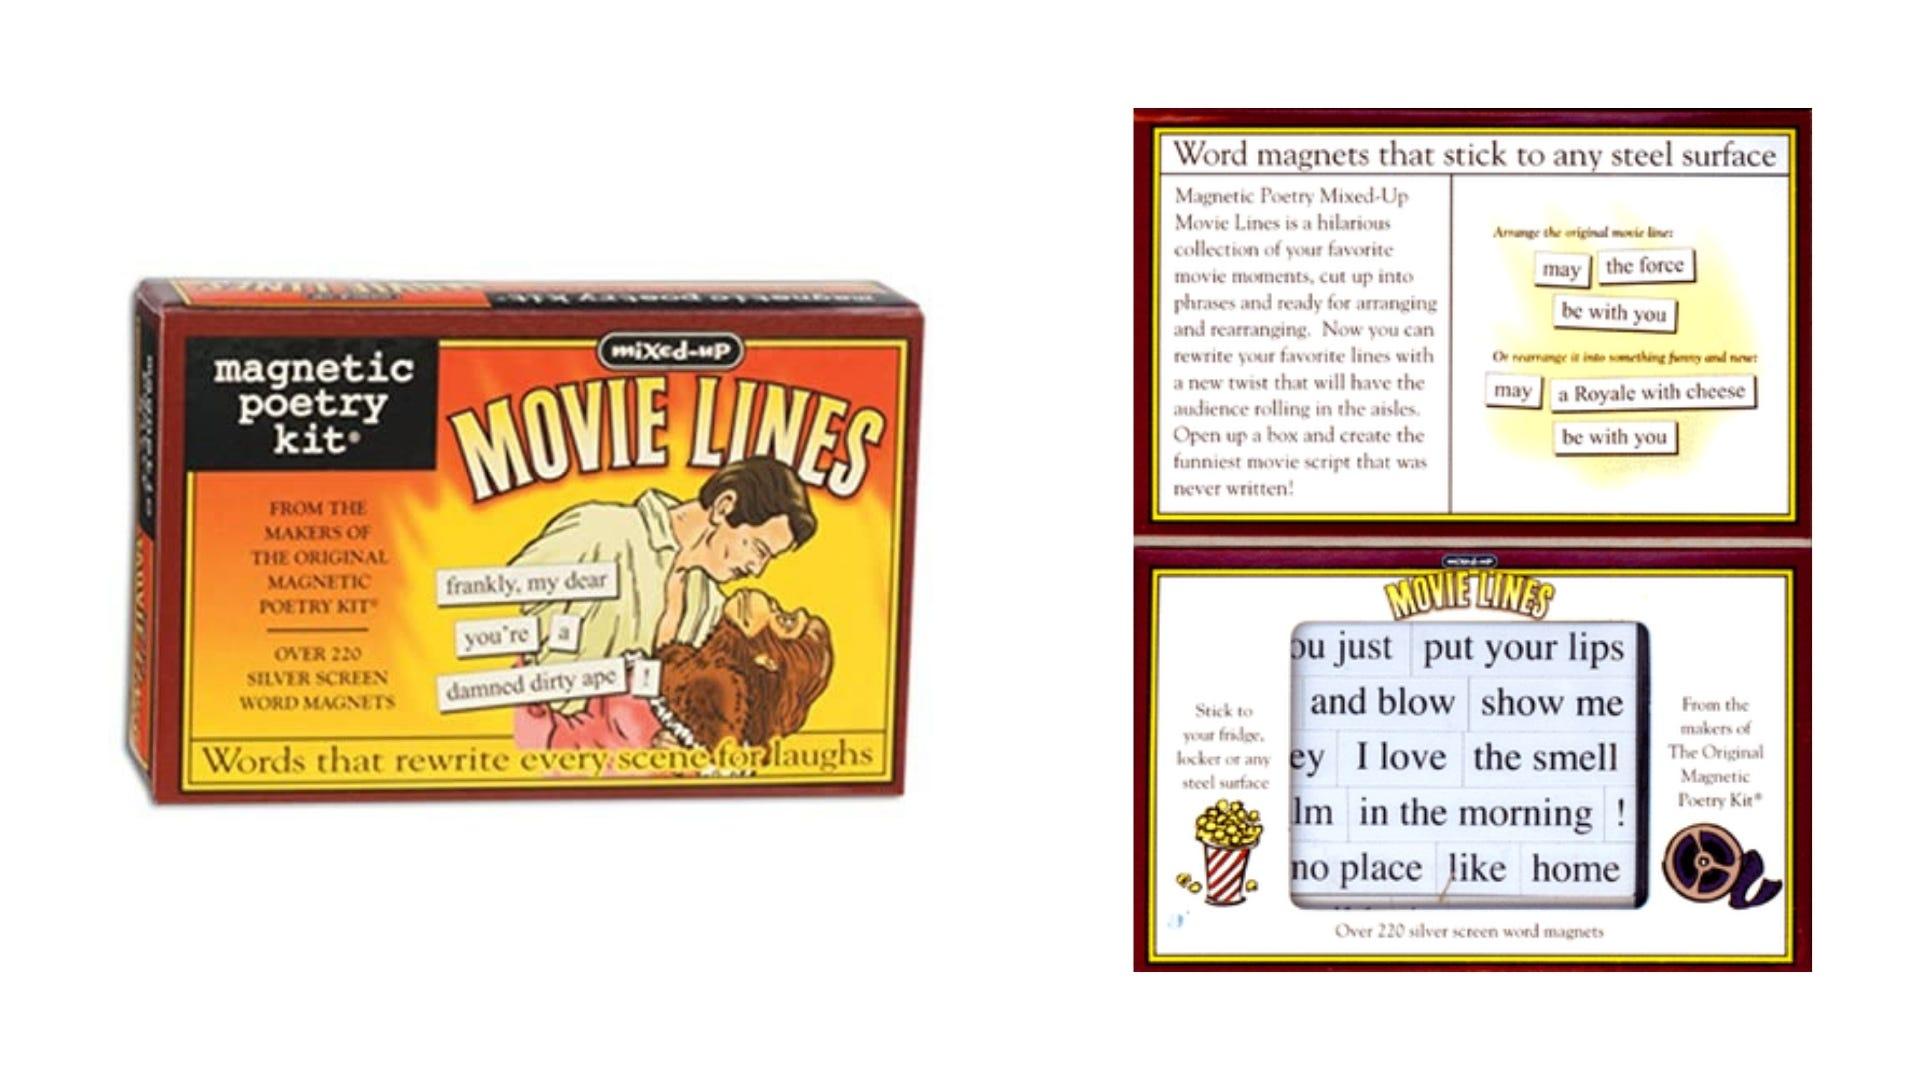 A front and inside view of the Movie Lines Magnetic Poetry kit